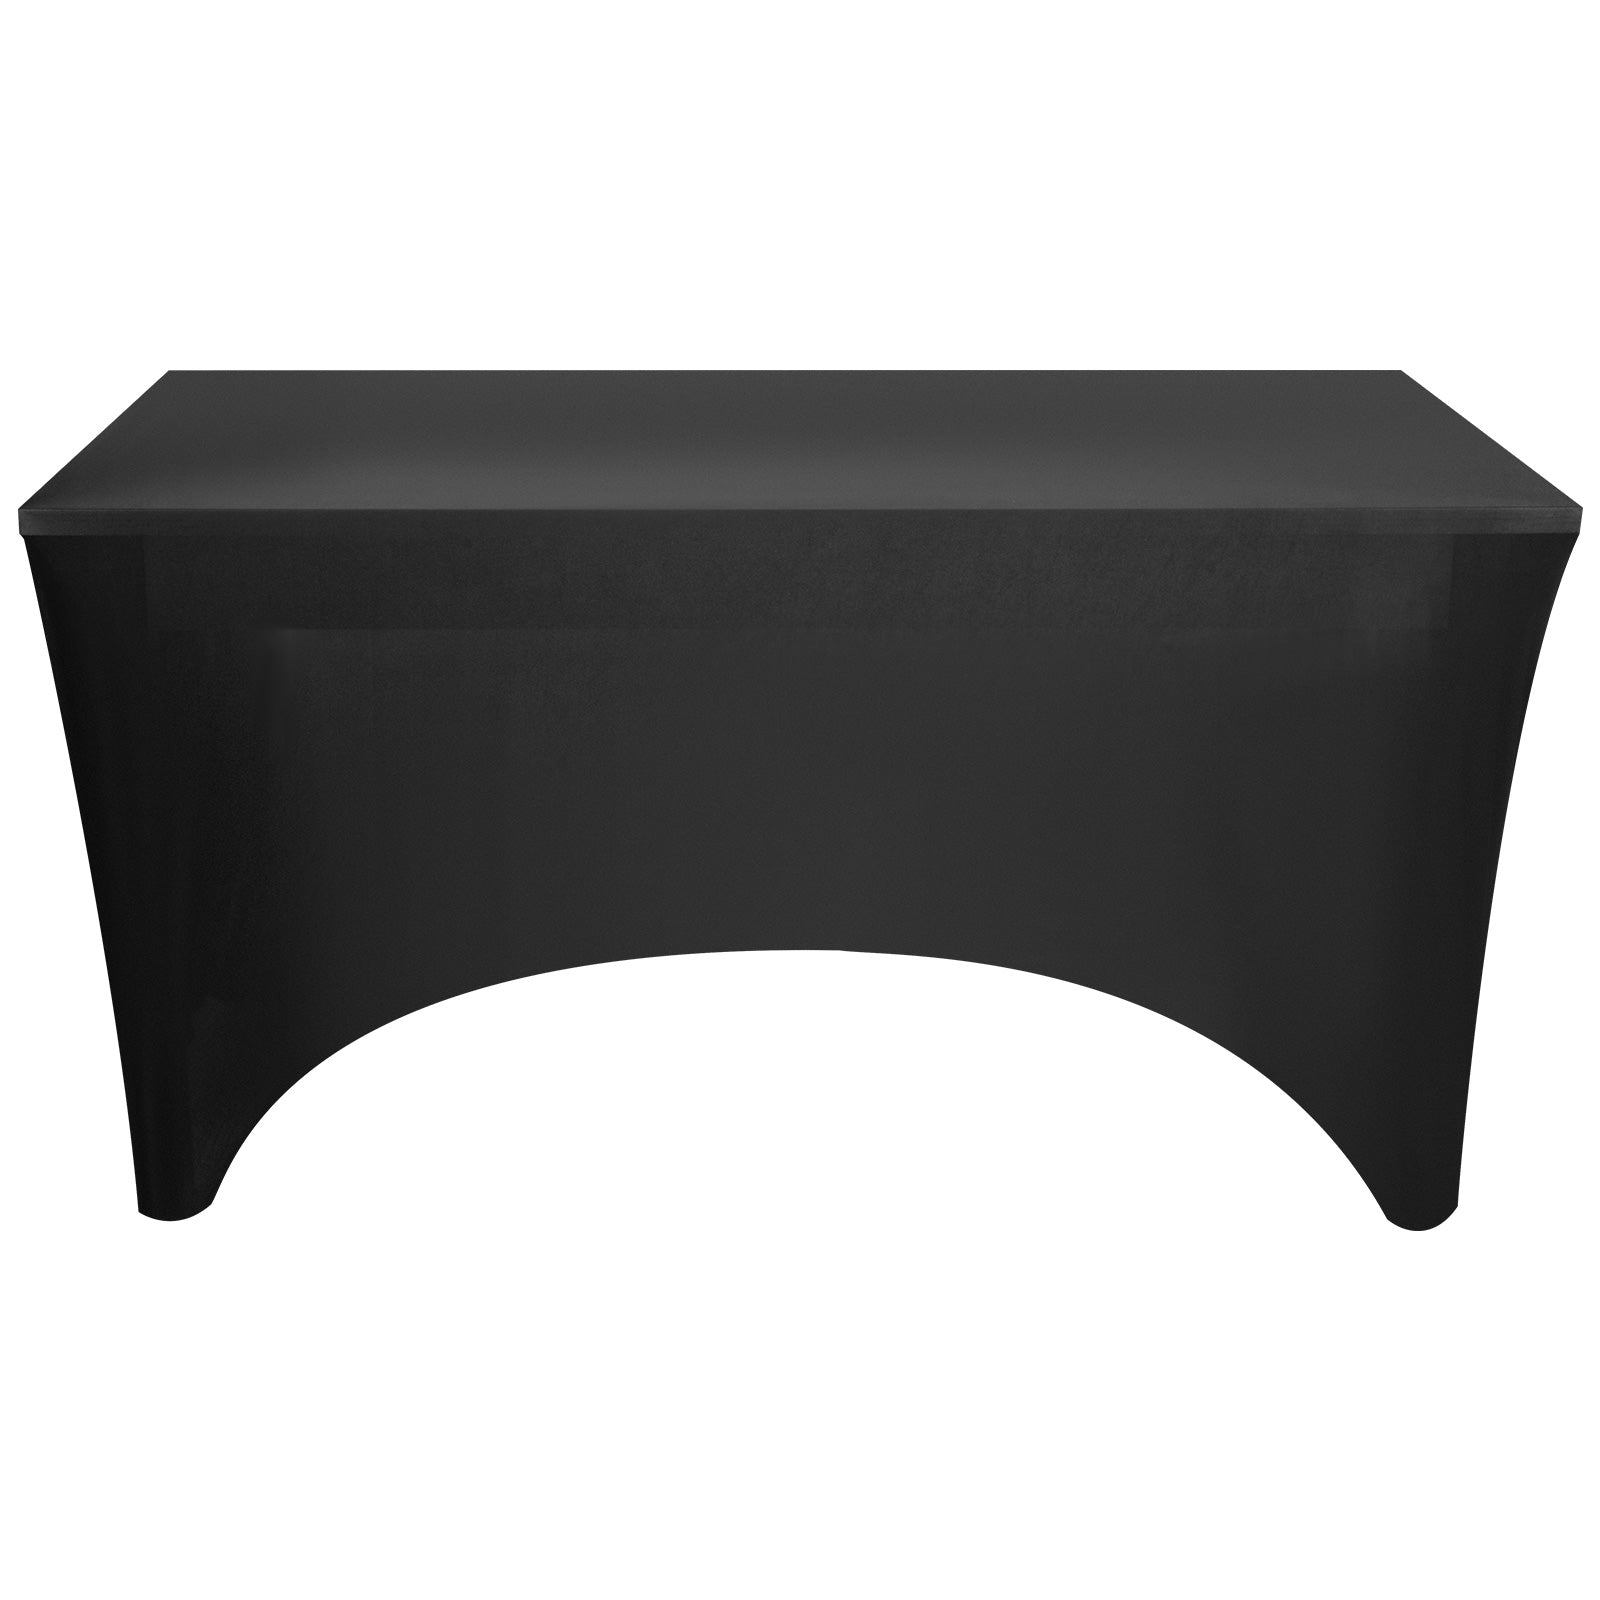 20pcs Rectangular Tablecloth Spandex Lycra Stretch Table Cover 6ft Black Wedding